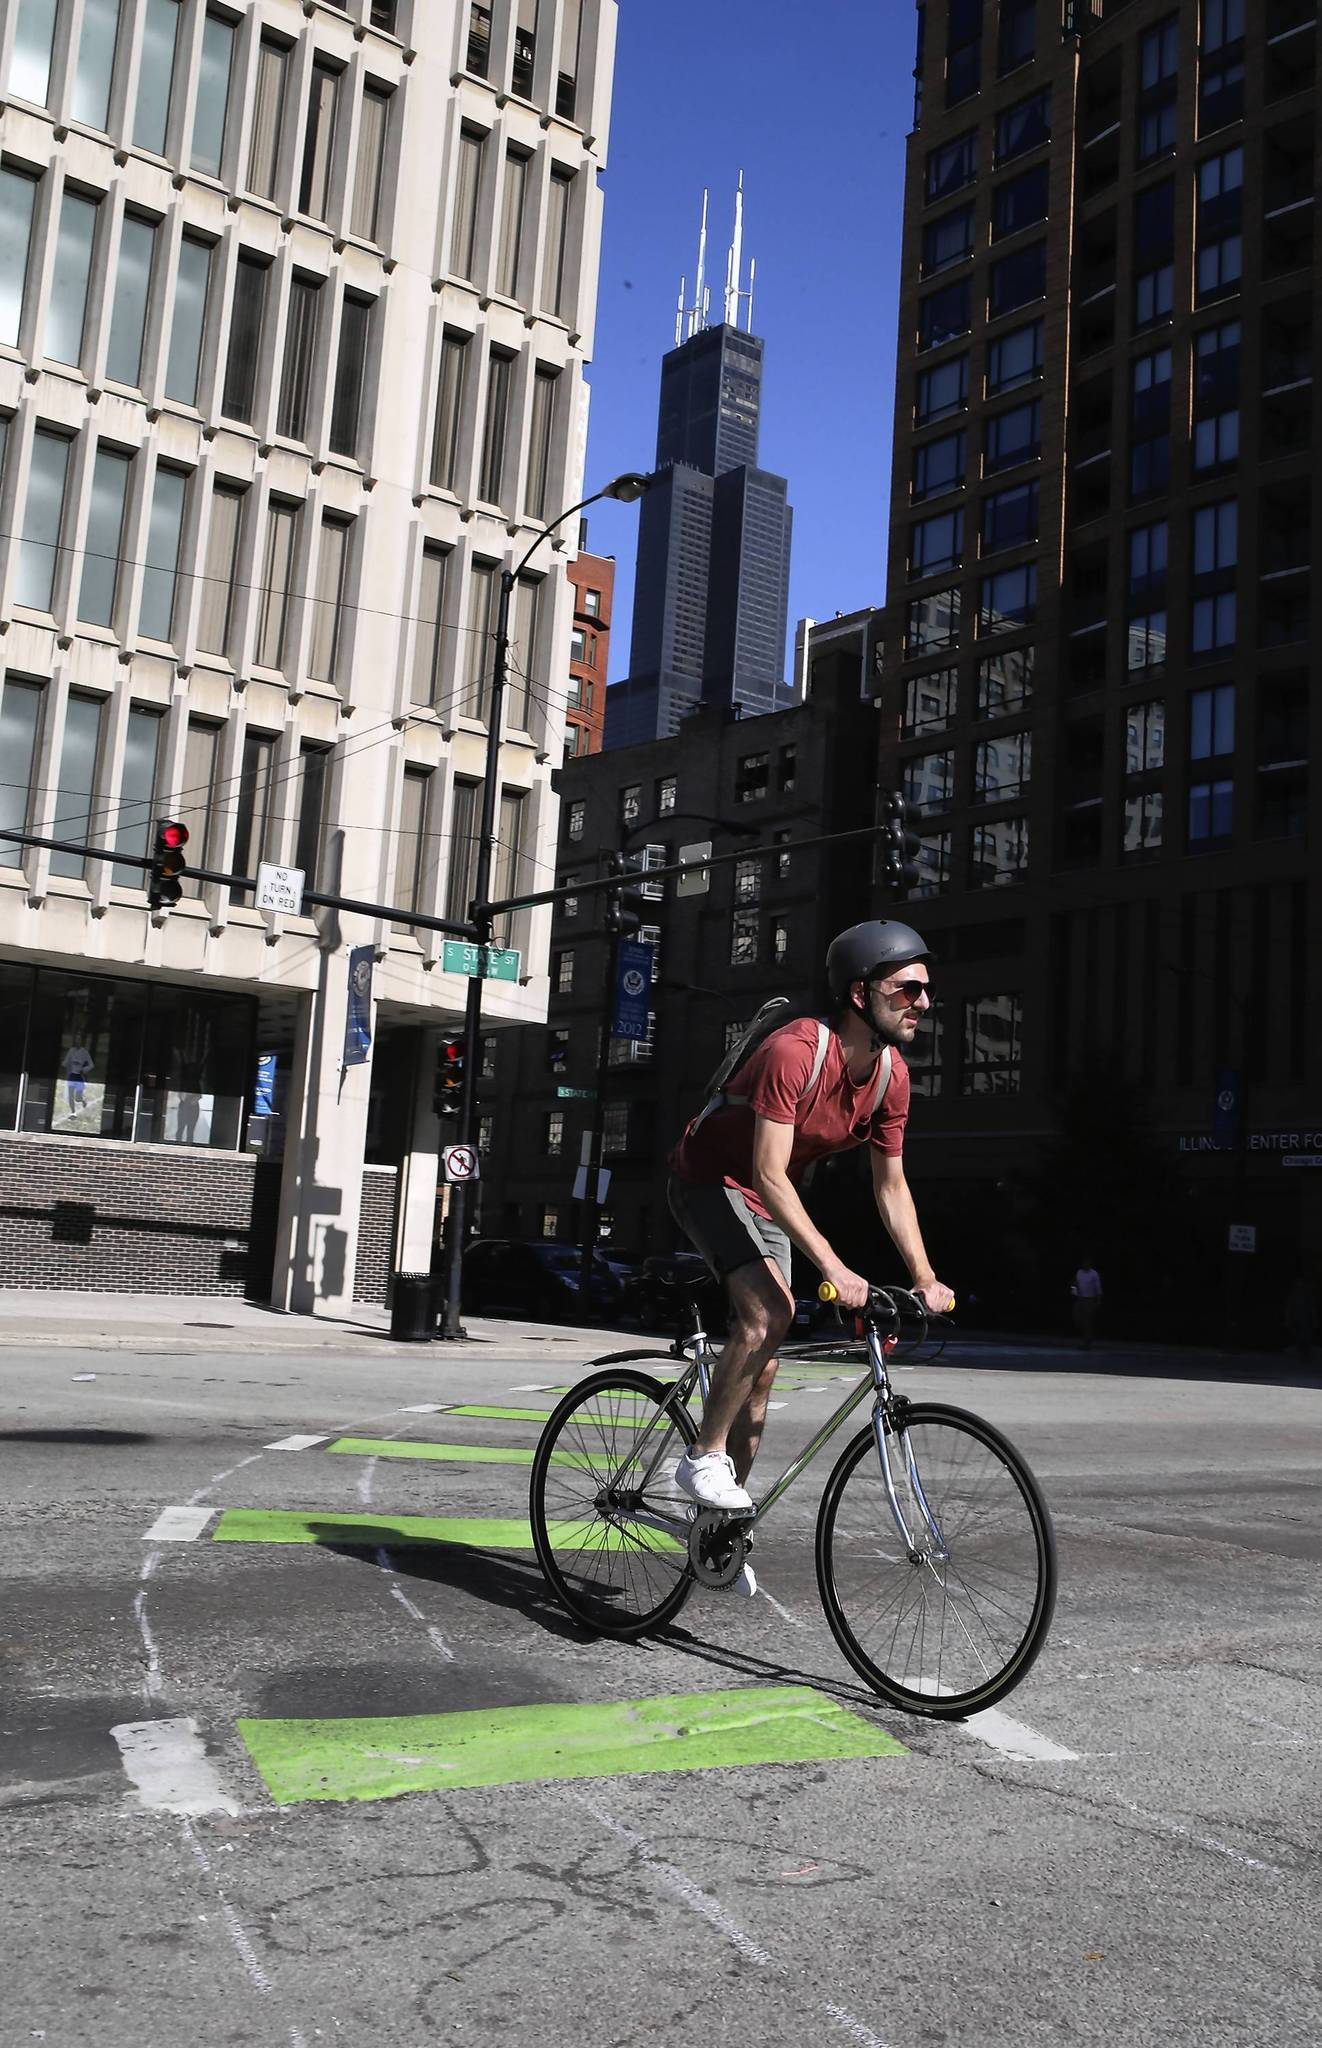 A bicyclist navigates the new curved bike lanes painted on the Harrison and State street intersections in Chicago.